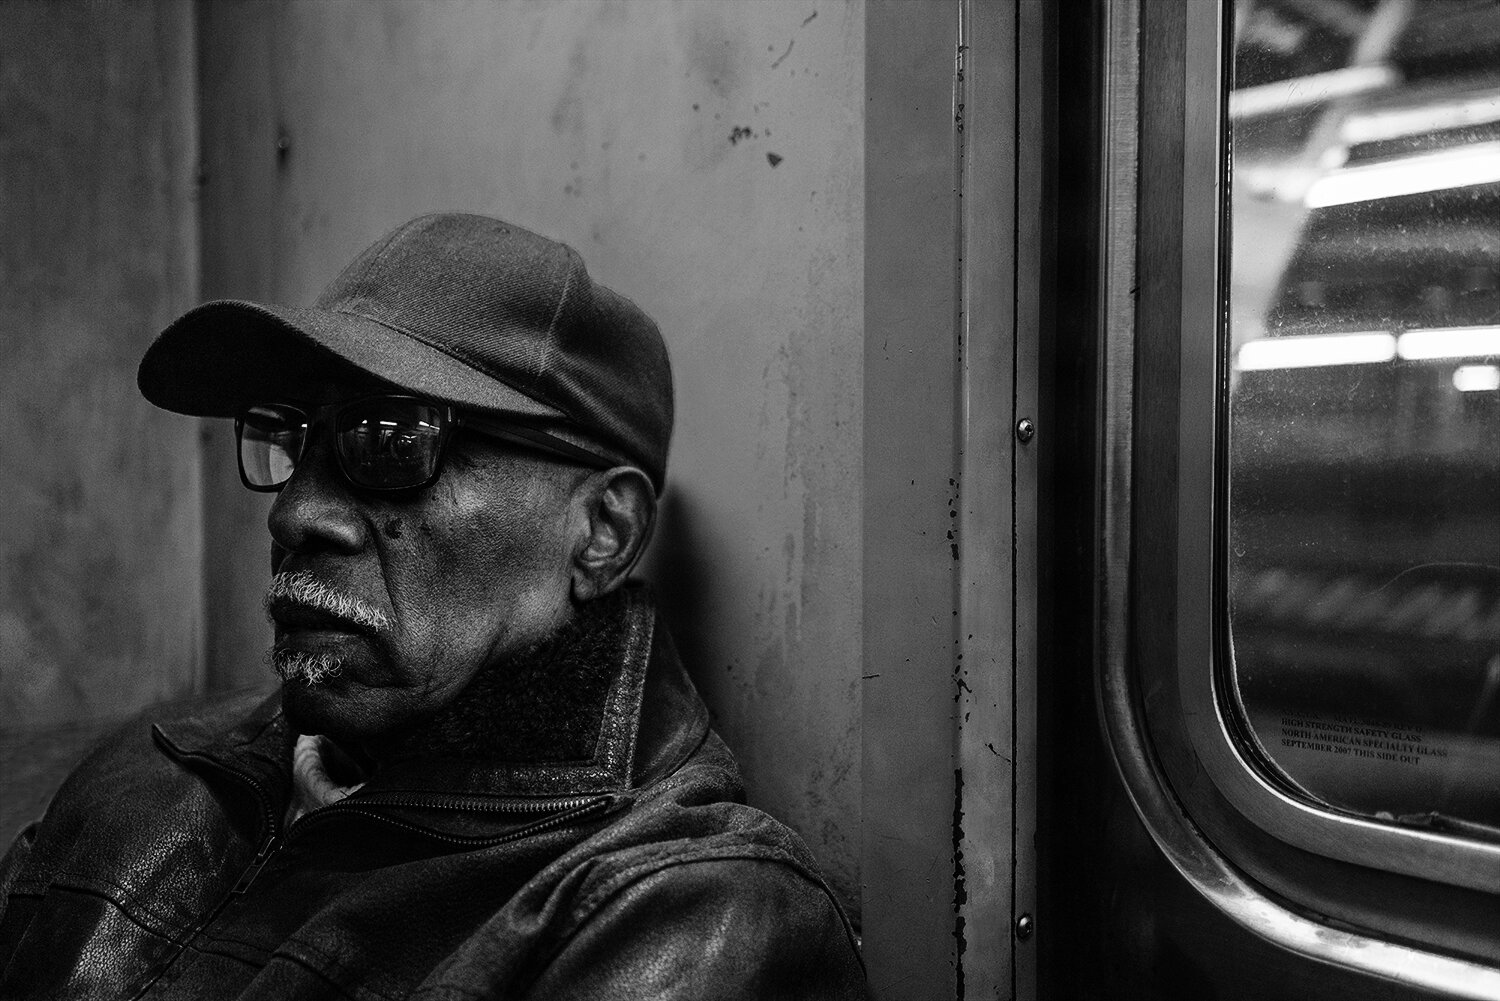 NYC_Subway_2018_African_American_Man_with_Shades-017.jpg